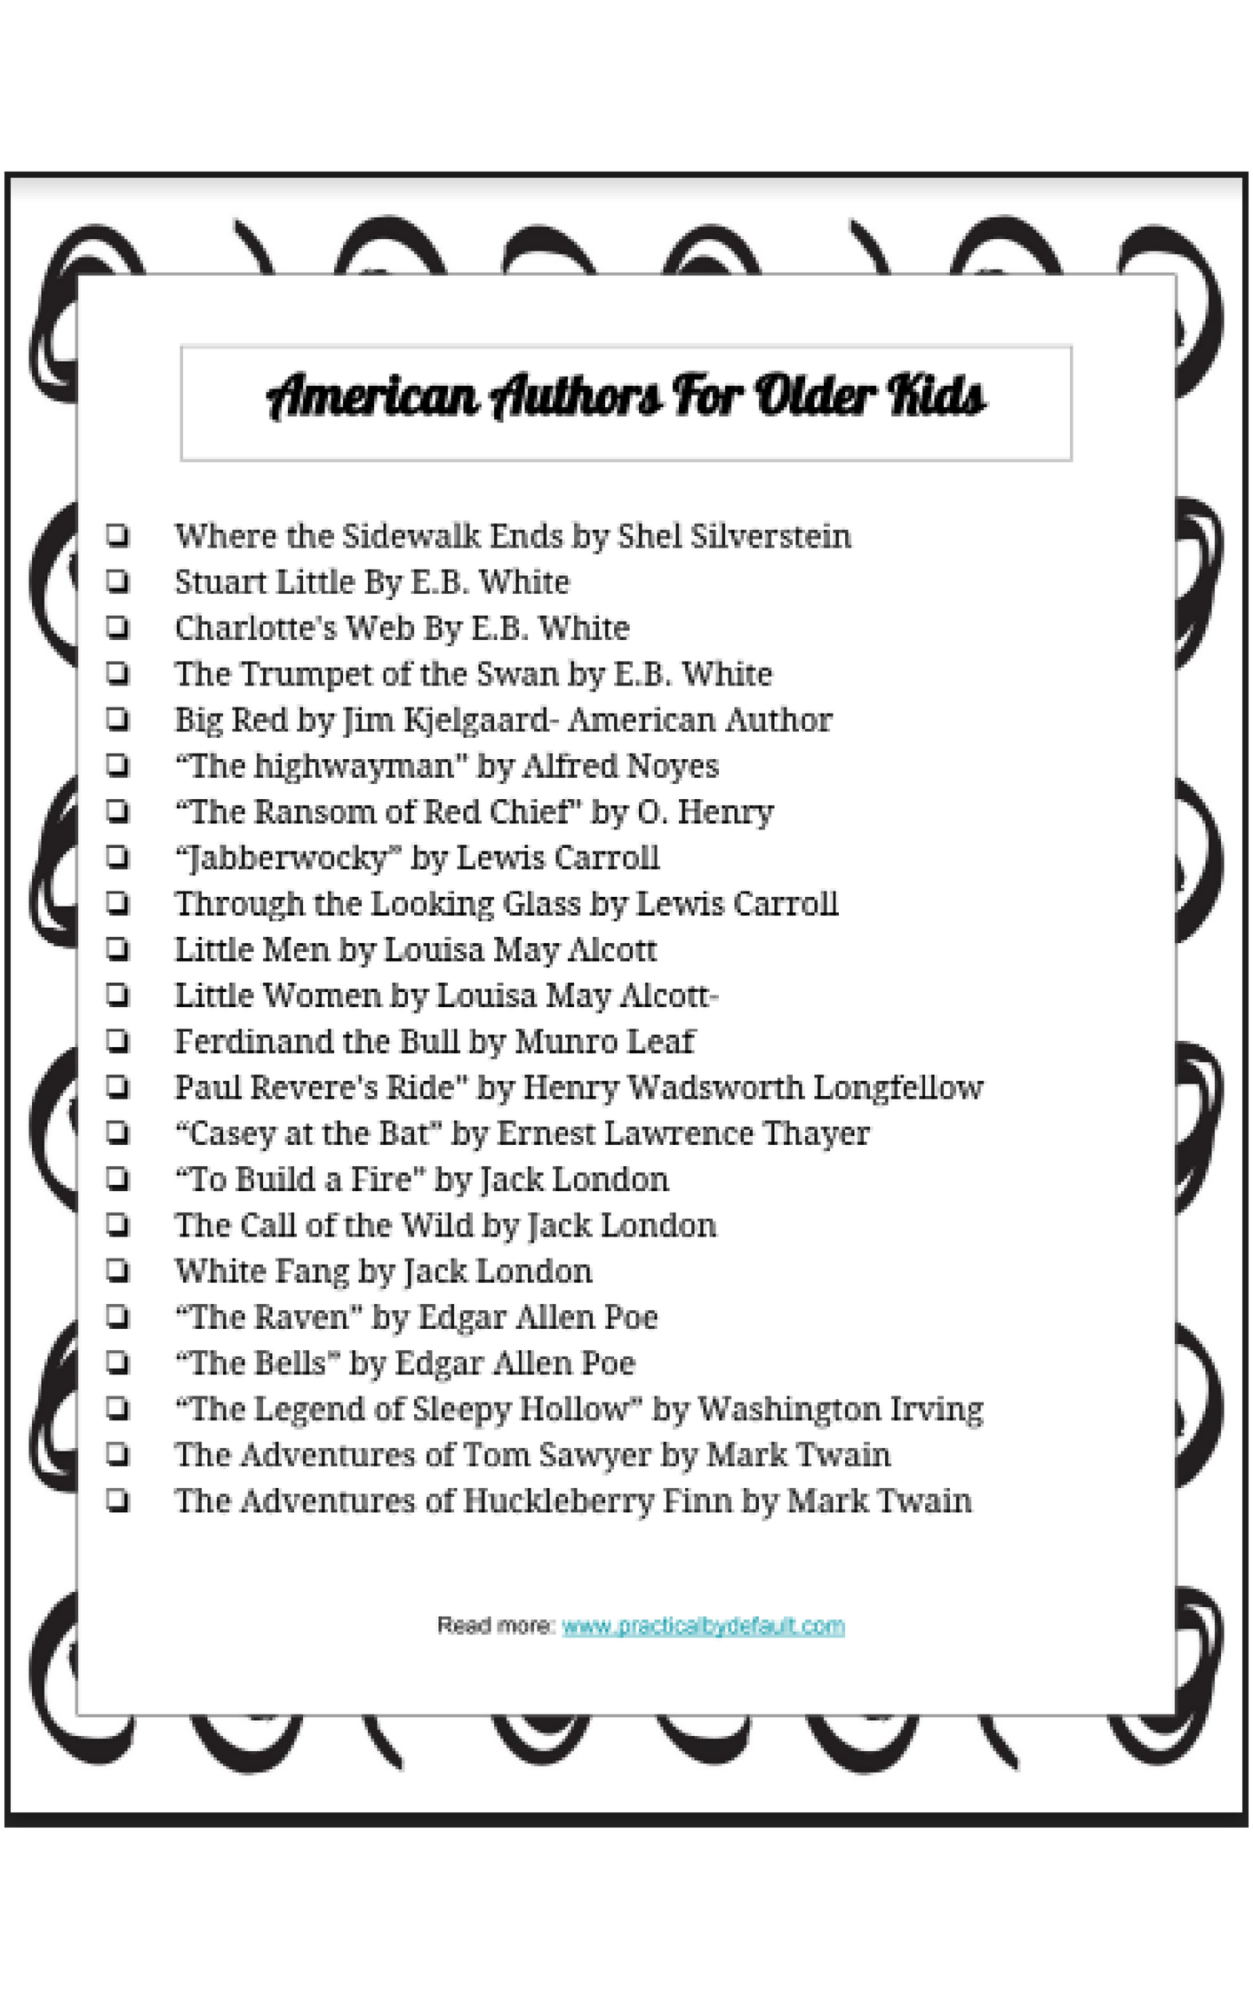 Free Homeschool Printables Amp Worksheets For Pre K To High